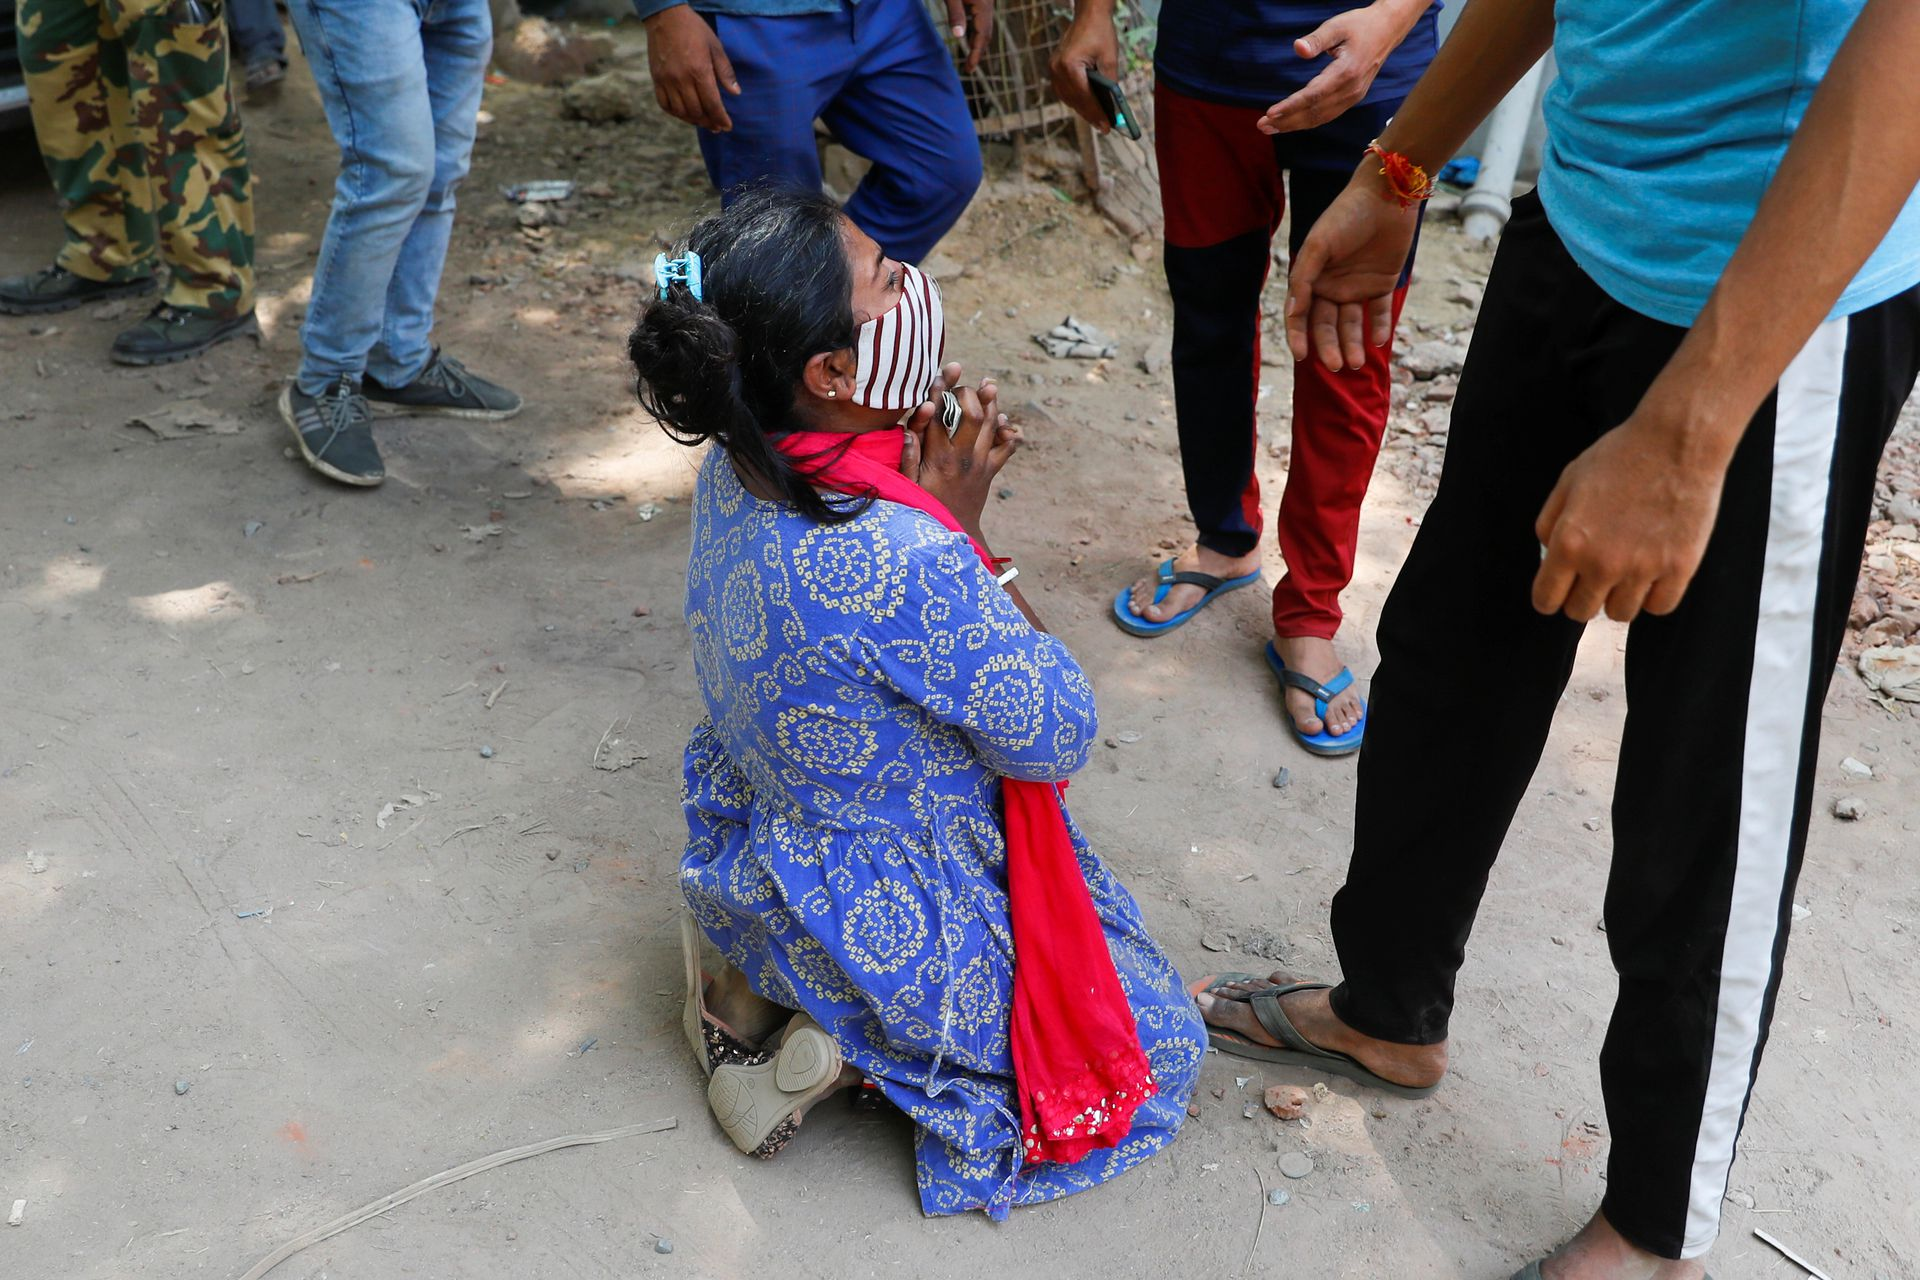 Shruti Saha, who had been waiting since Tuesday night for her turn to get an oxygen cylinder refilled for her mother, reacts after she was informed about her mother's death, outside a refilling workshop, in New Delhi, India, April 28, 2021. Photo: Reuters